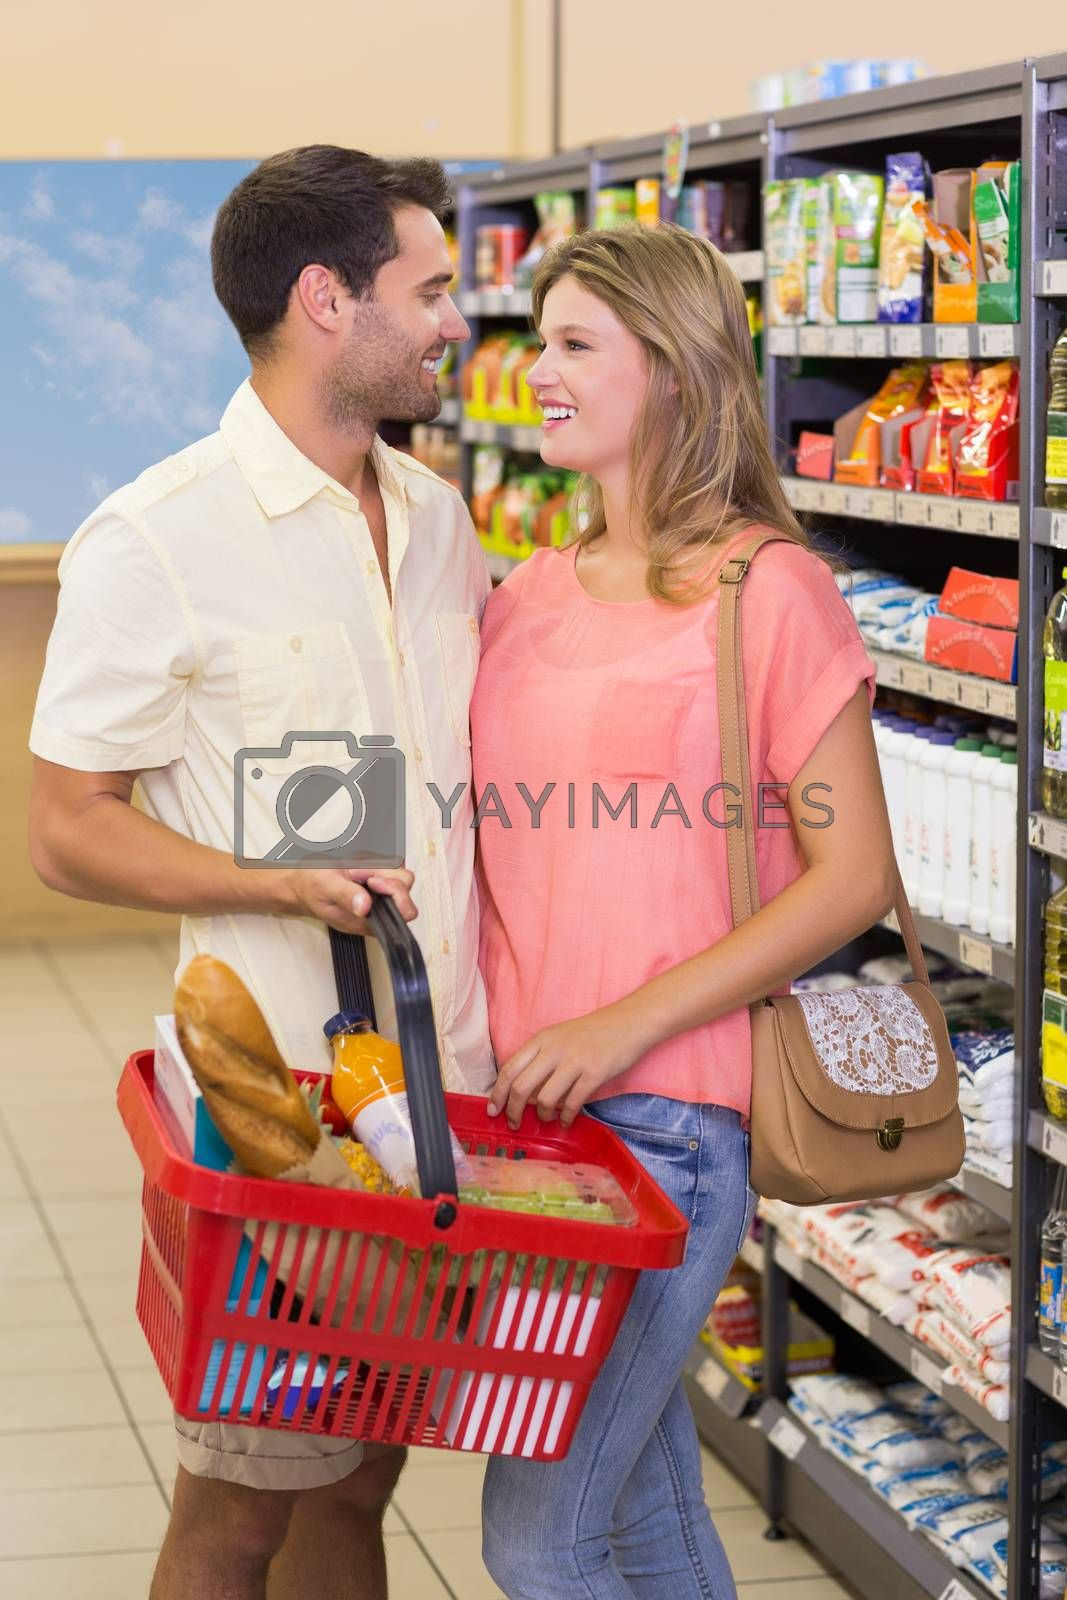 Royalty free image of Smiling bright couple buying food products using shopping basket  by Wavebreakmedia